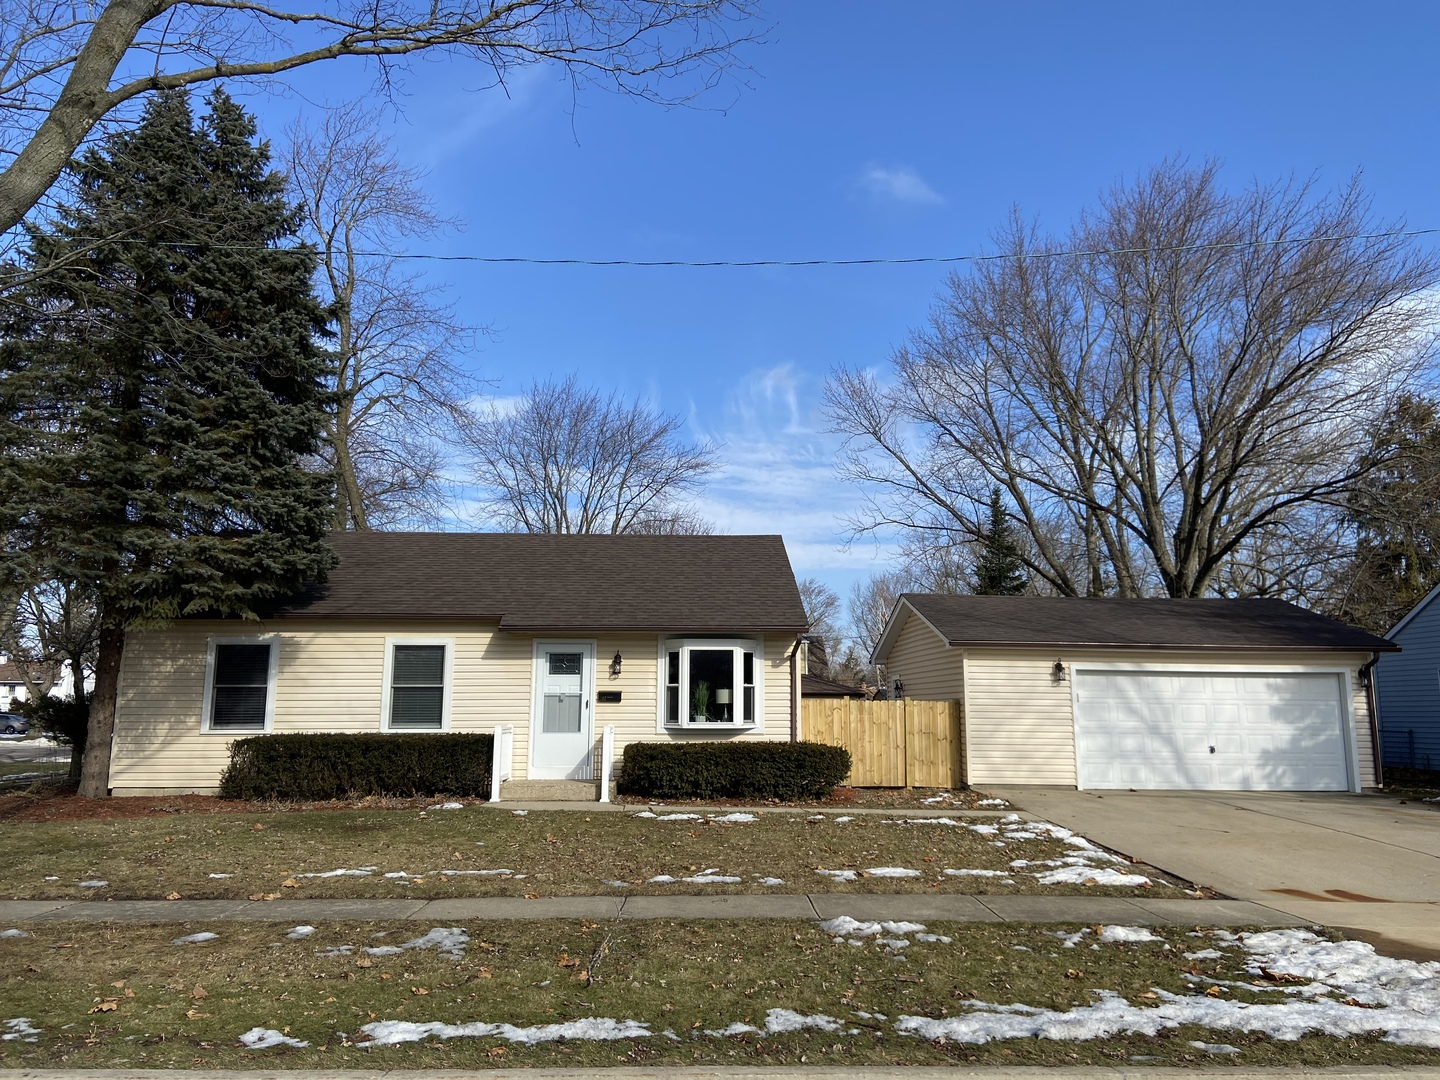 292 Mohawk Trail, Buffalo Grove in Cook County, IL 60089 Home for Sale